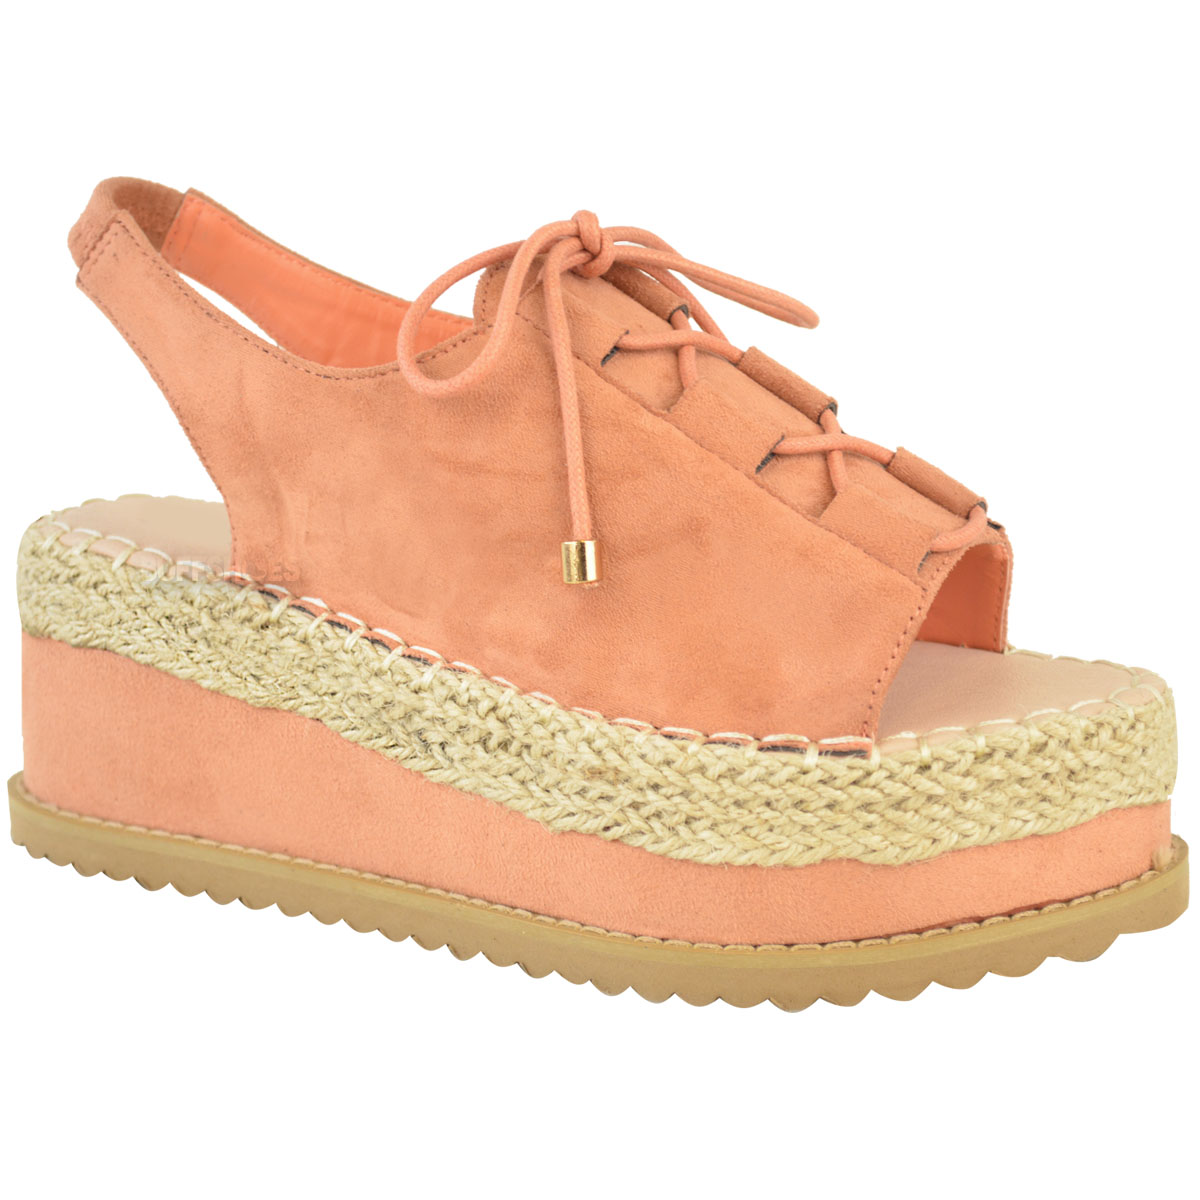 Elegant Details About Womens Ladies Espadrille Flatforms Wedge Sandals Lace Up